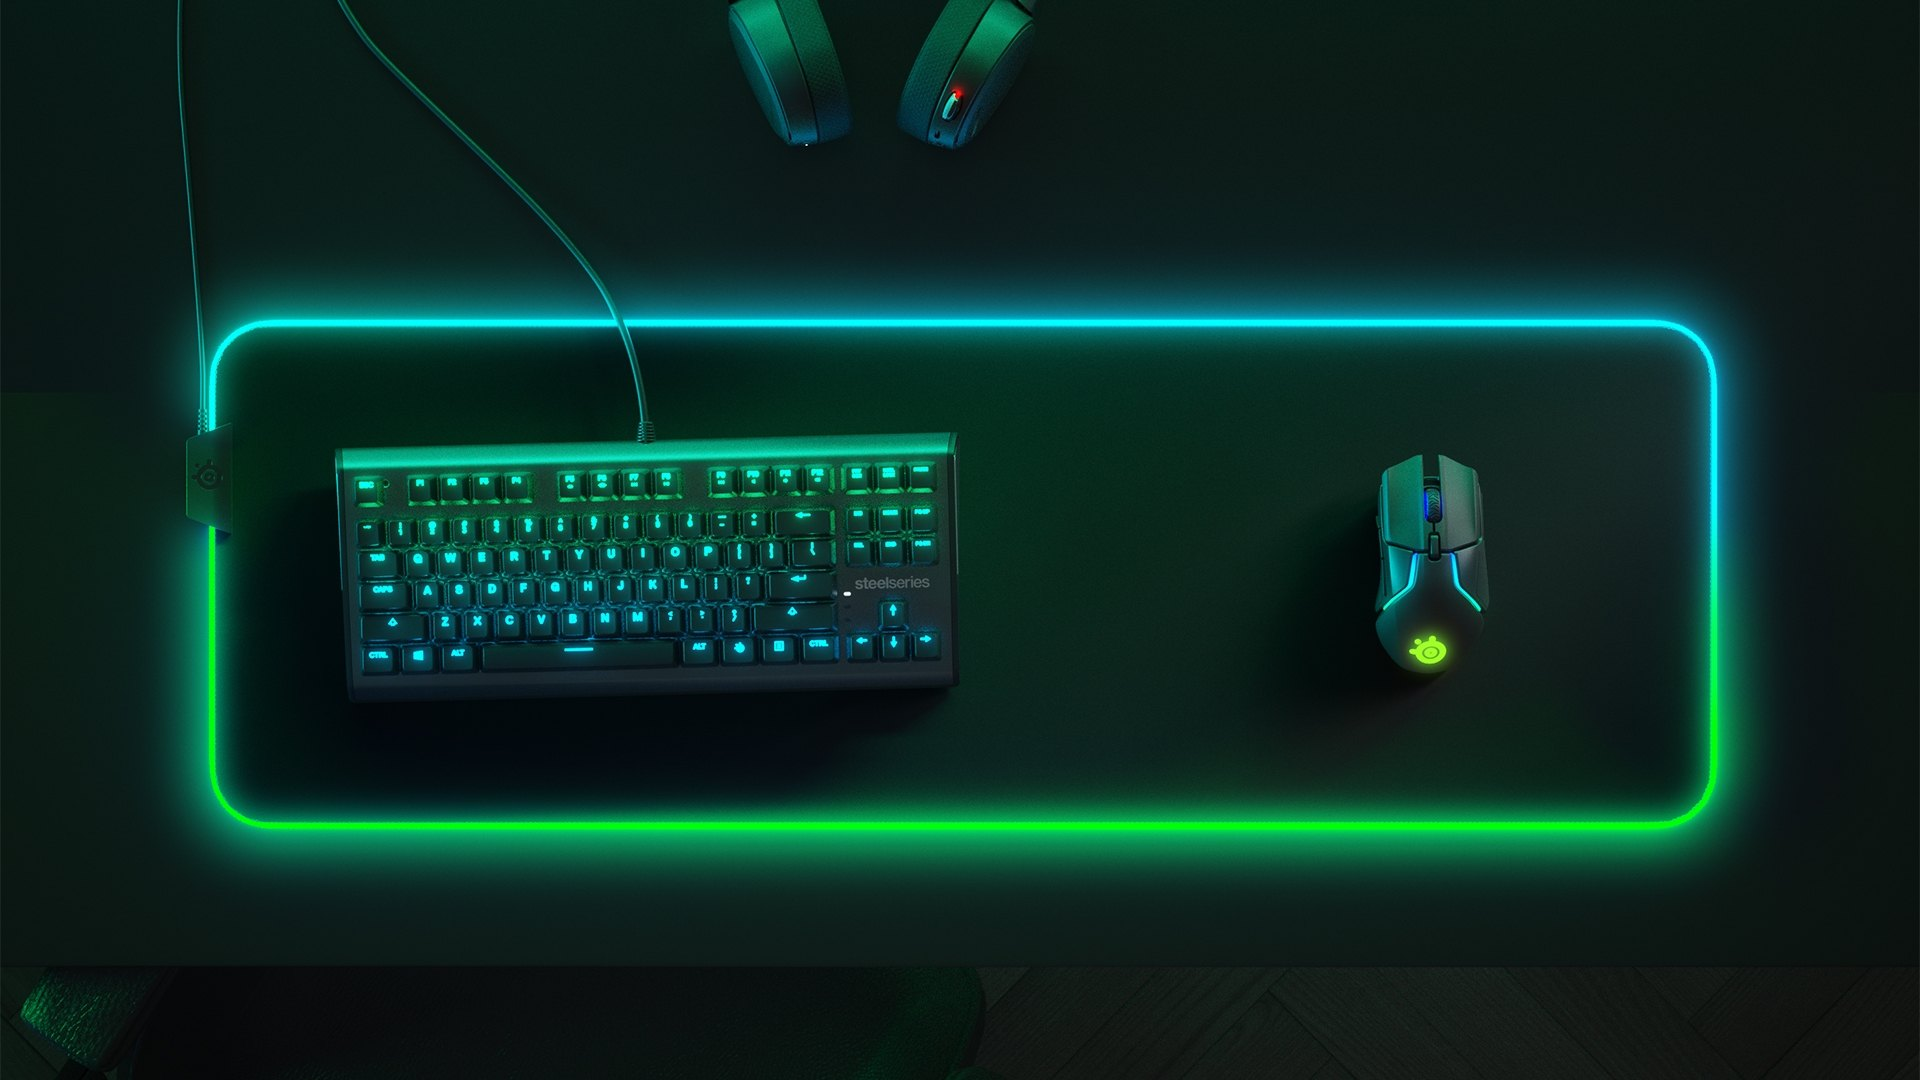 Prism mouse pad with RBG illumination and peripherals to show scale